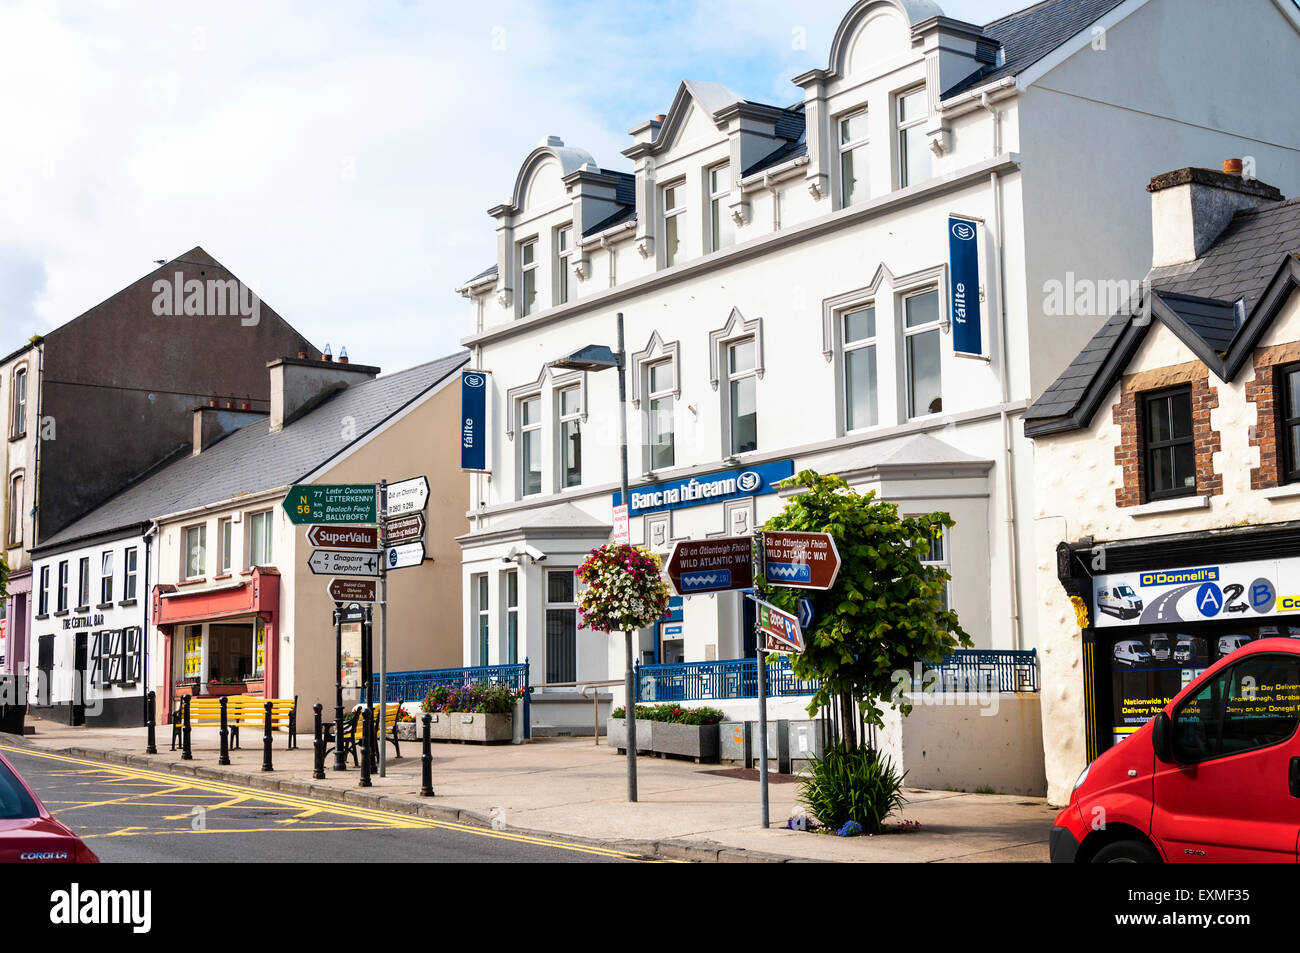 Bank of Ireland in An Clochán Liath, Dungloe or Dunglow a Gaeltacht town in County Donegal, Ireland. - Stock Image